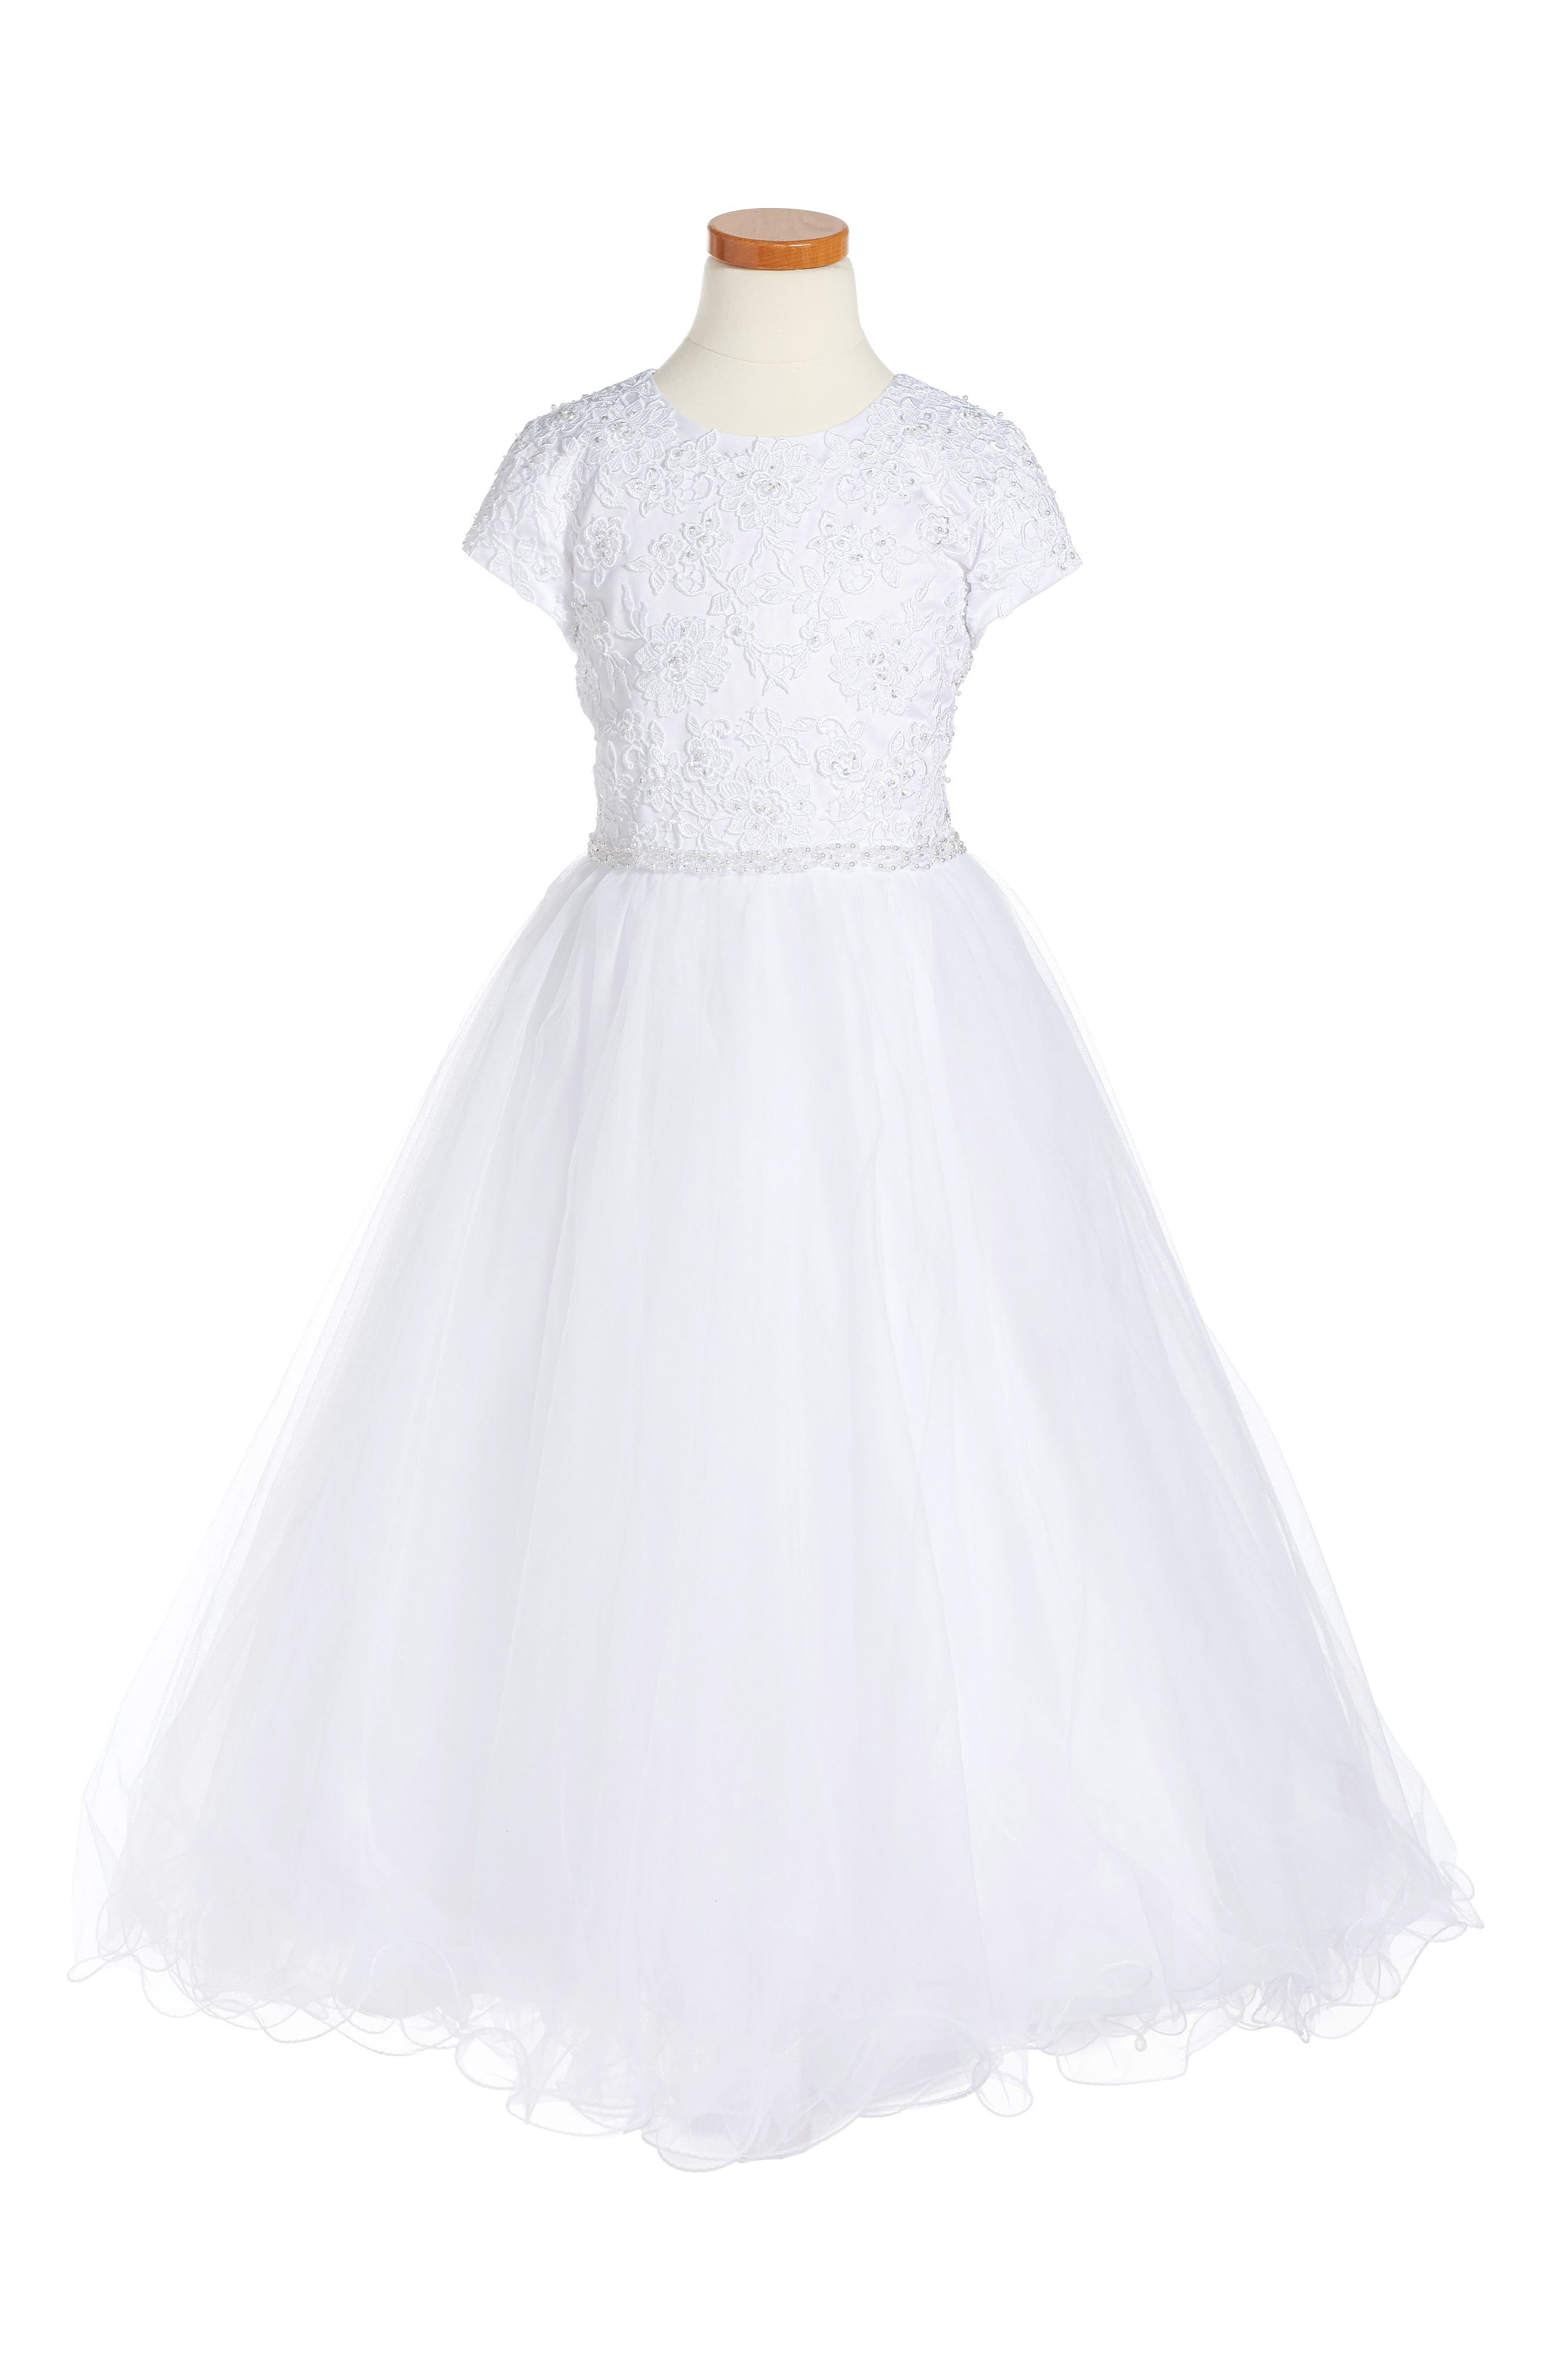 Joan Calabrese for Mon Cheri Floral Appliqué First Communion Dress (Little Girls & Big Girls)